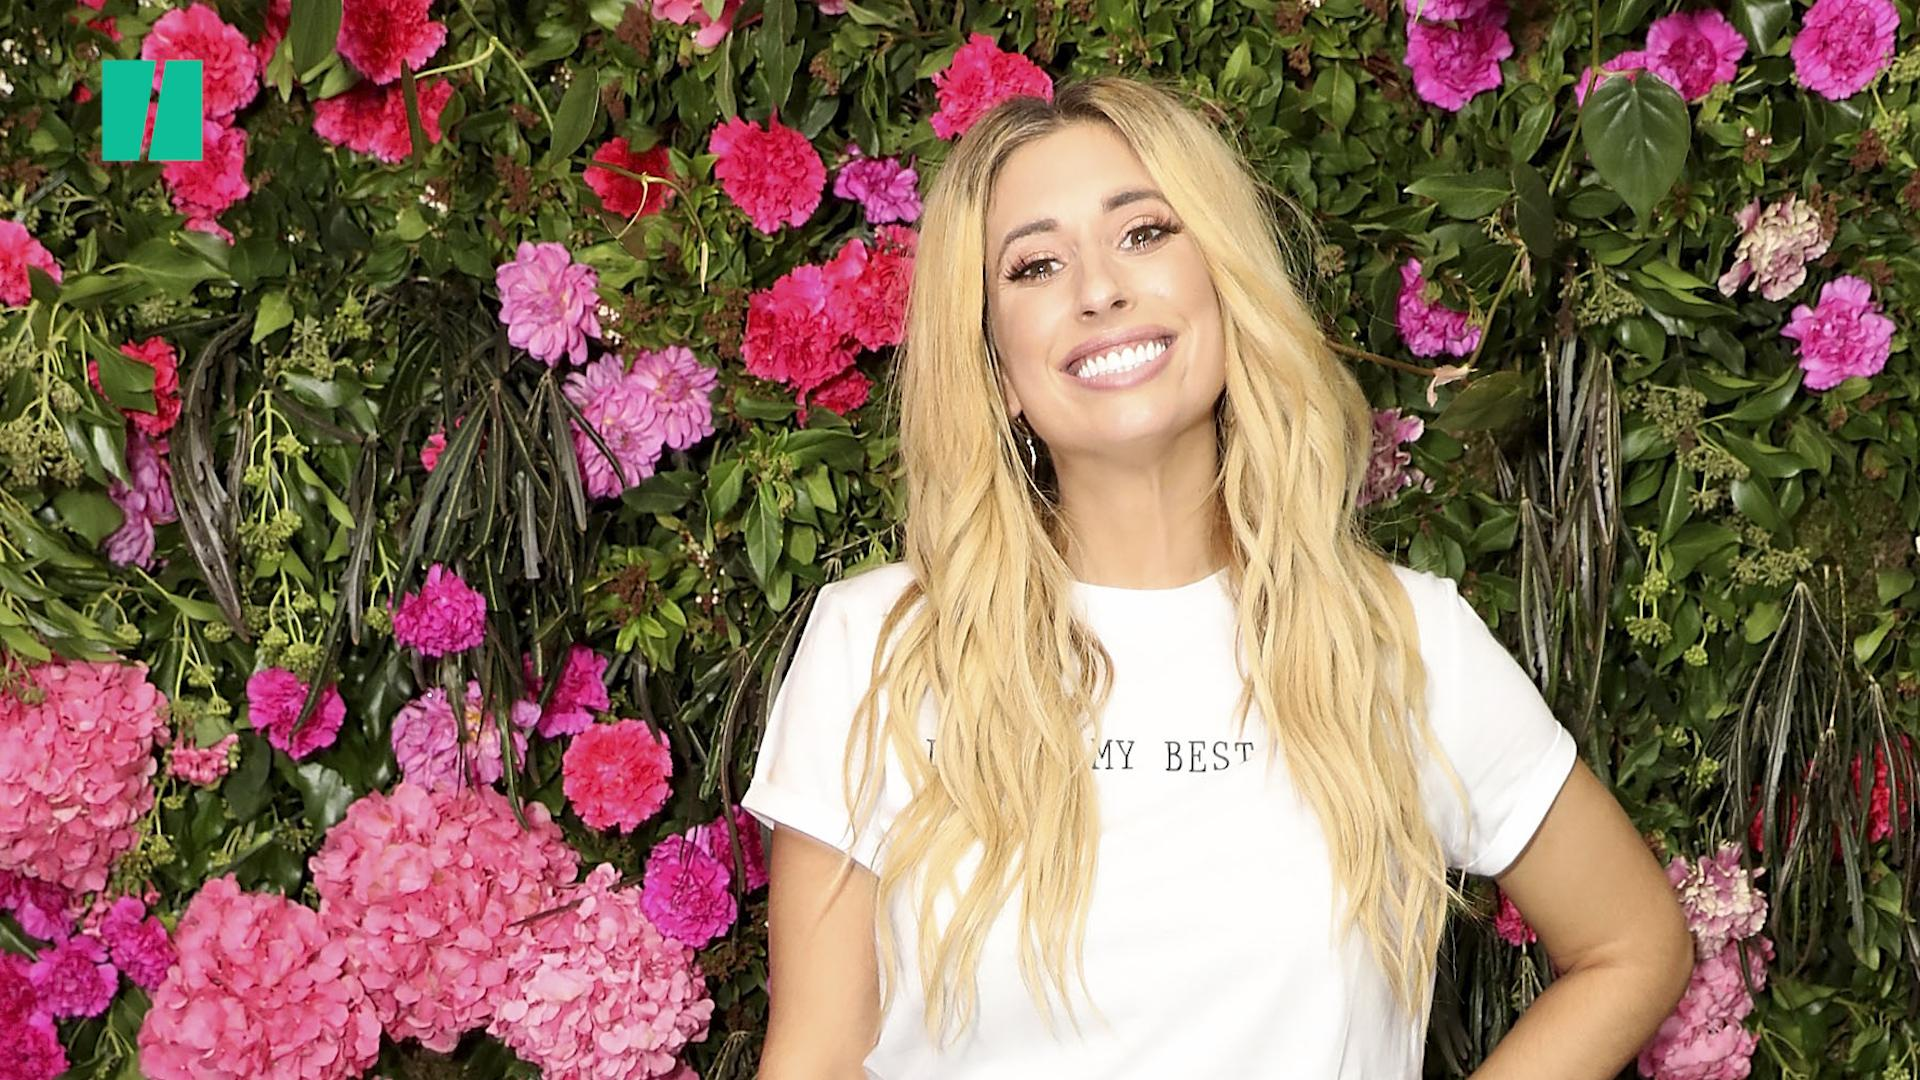 All The Times Stacey Solomon Got Real And Made Us Love Her